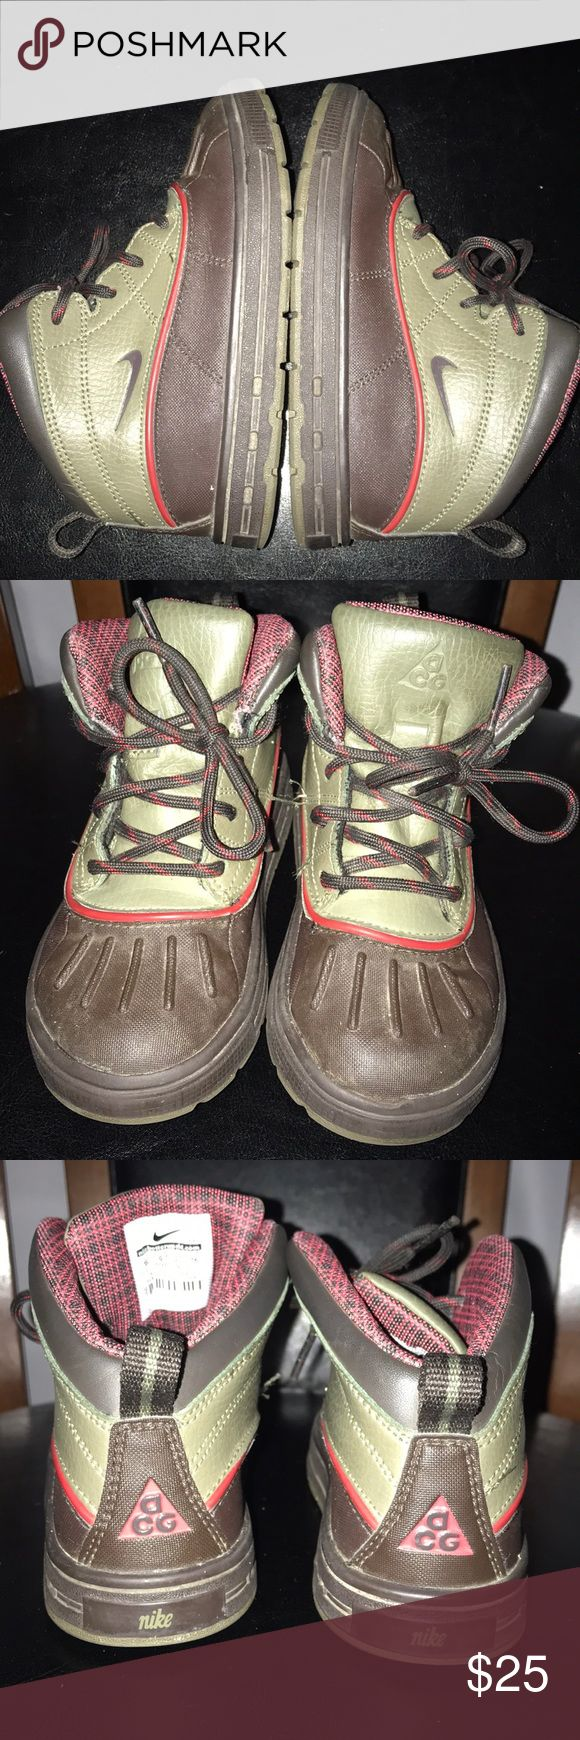 Kids AGC Nike Boots Size 10 Used Nike Boots in good shape. Nike ACG Shoes Boots